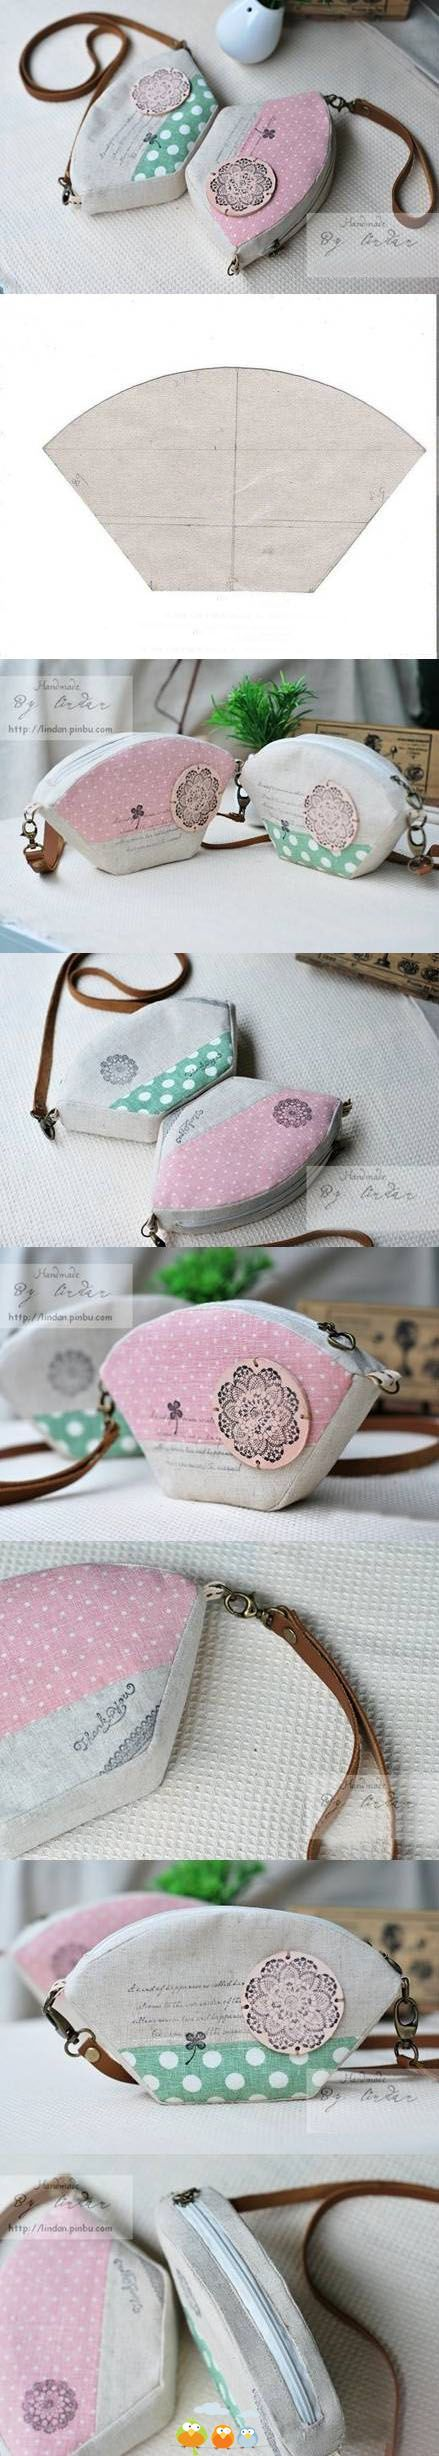 Cute change purse